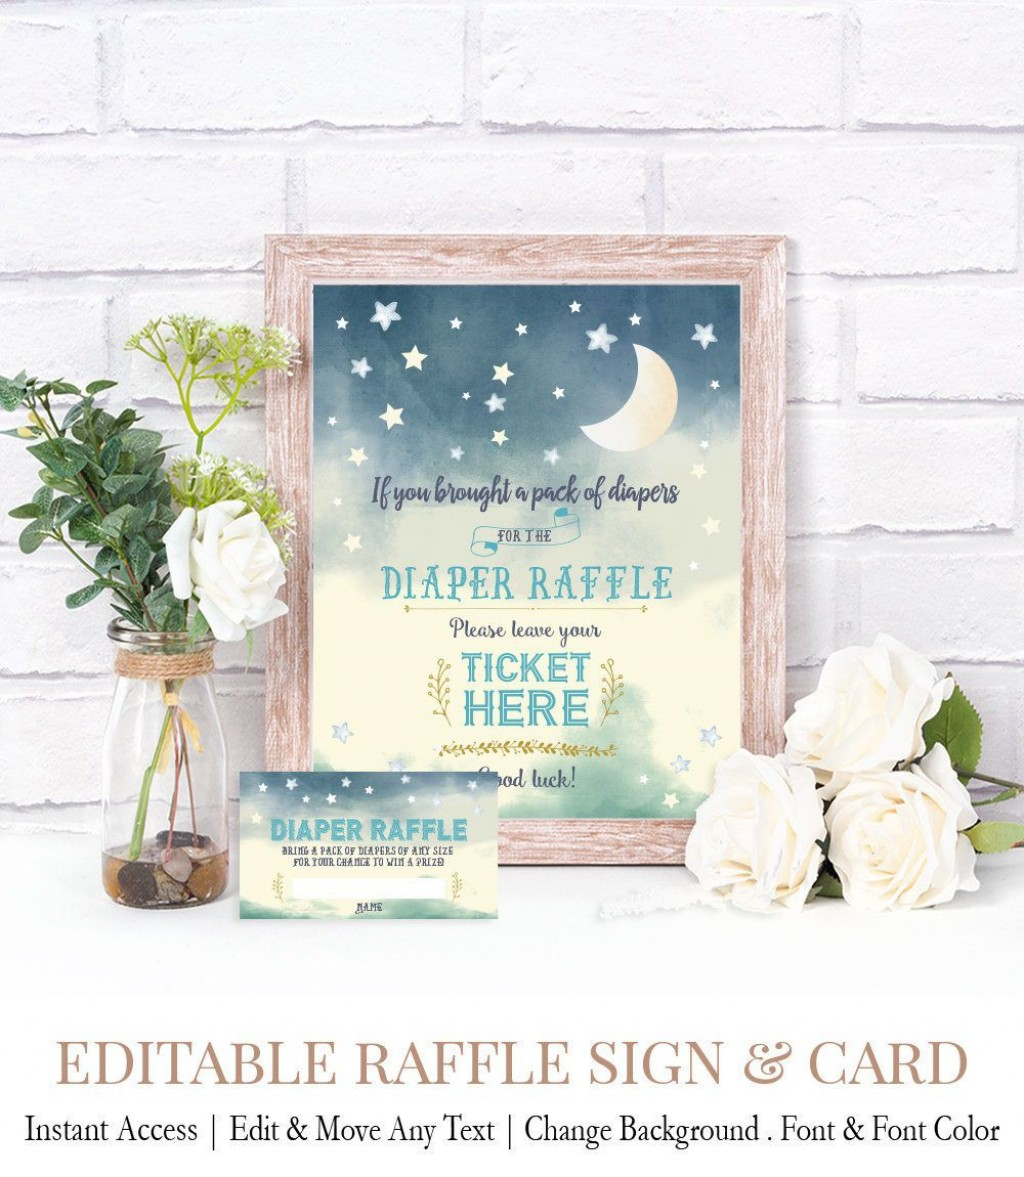 007 Excellent Diaper Raffle Ticket Template Sample  Boy Free Printable Print Black And WhiteLarge